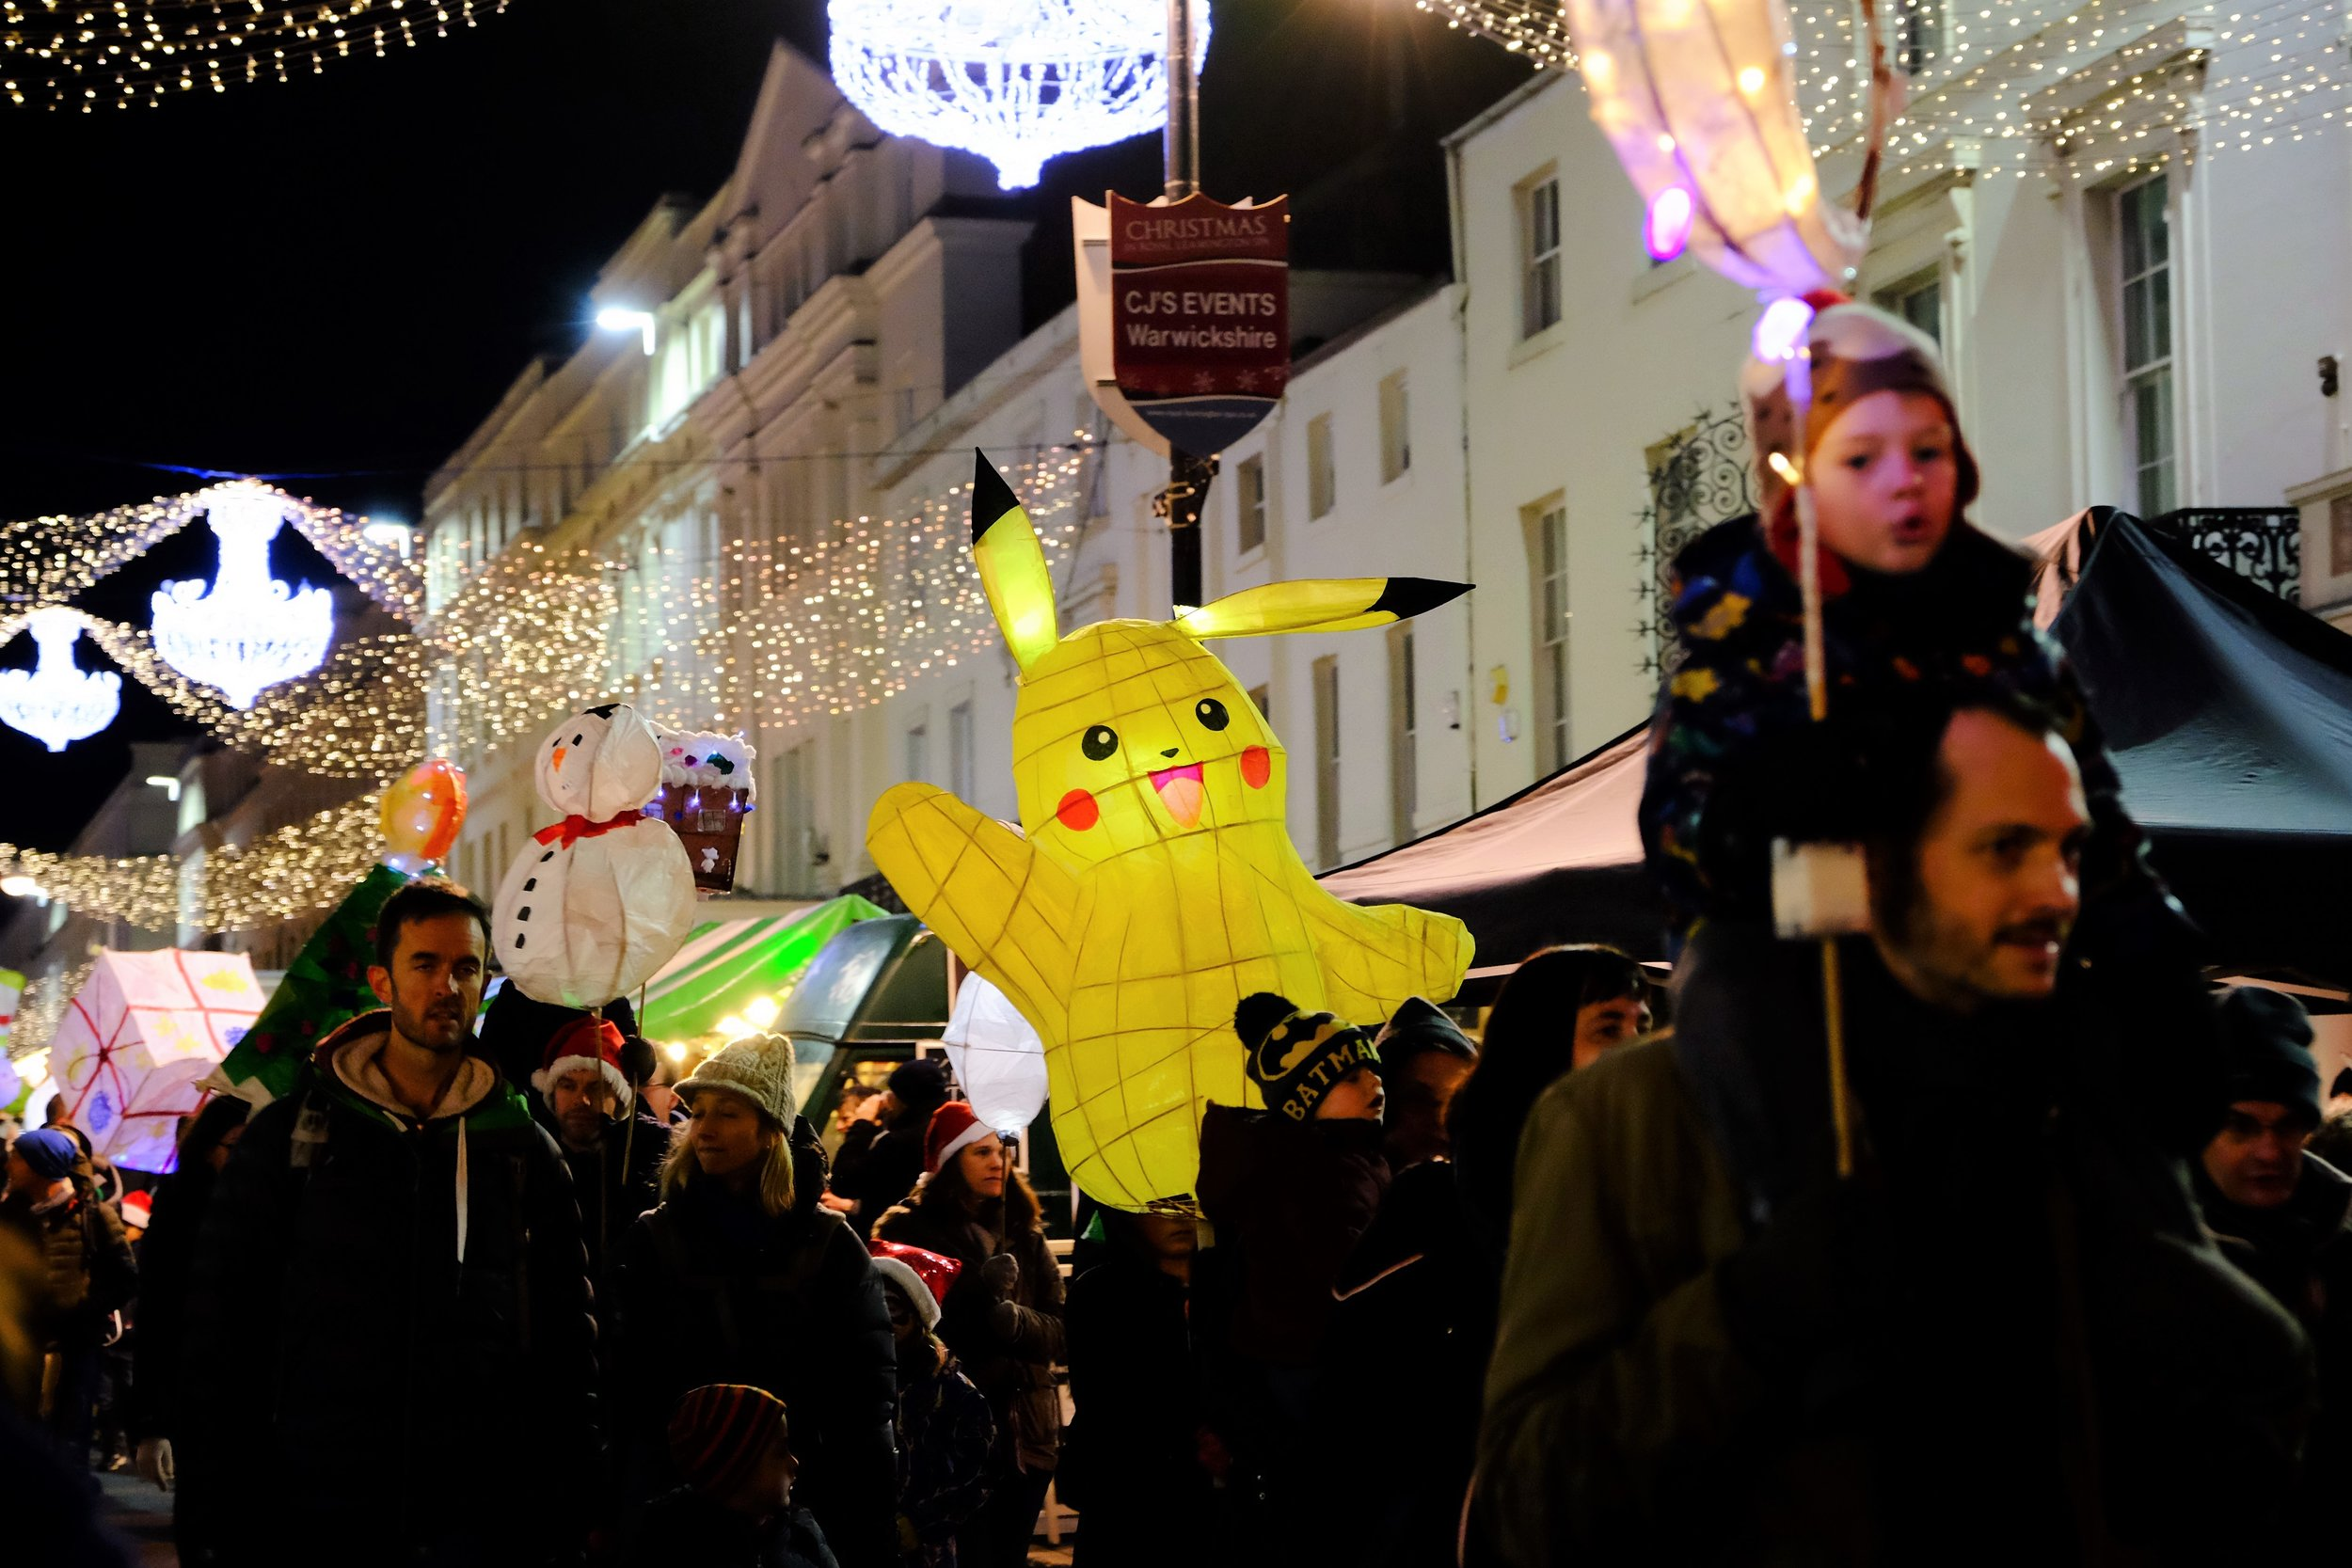 Leamington Spa Event photographer - town carnival leamington lantern parade pikachu warwickshire.JPG